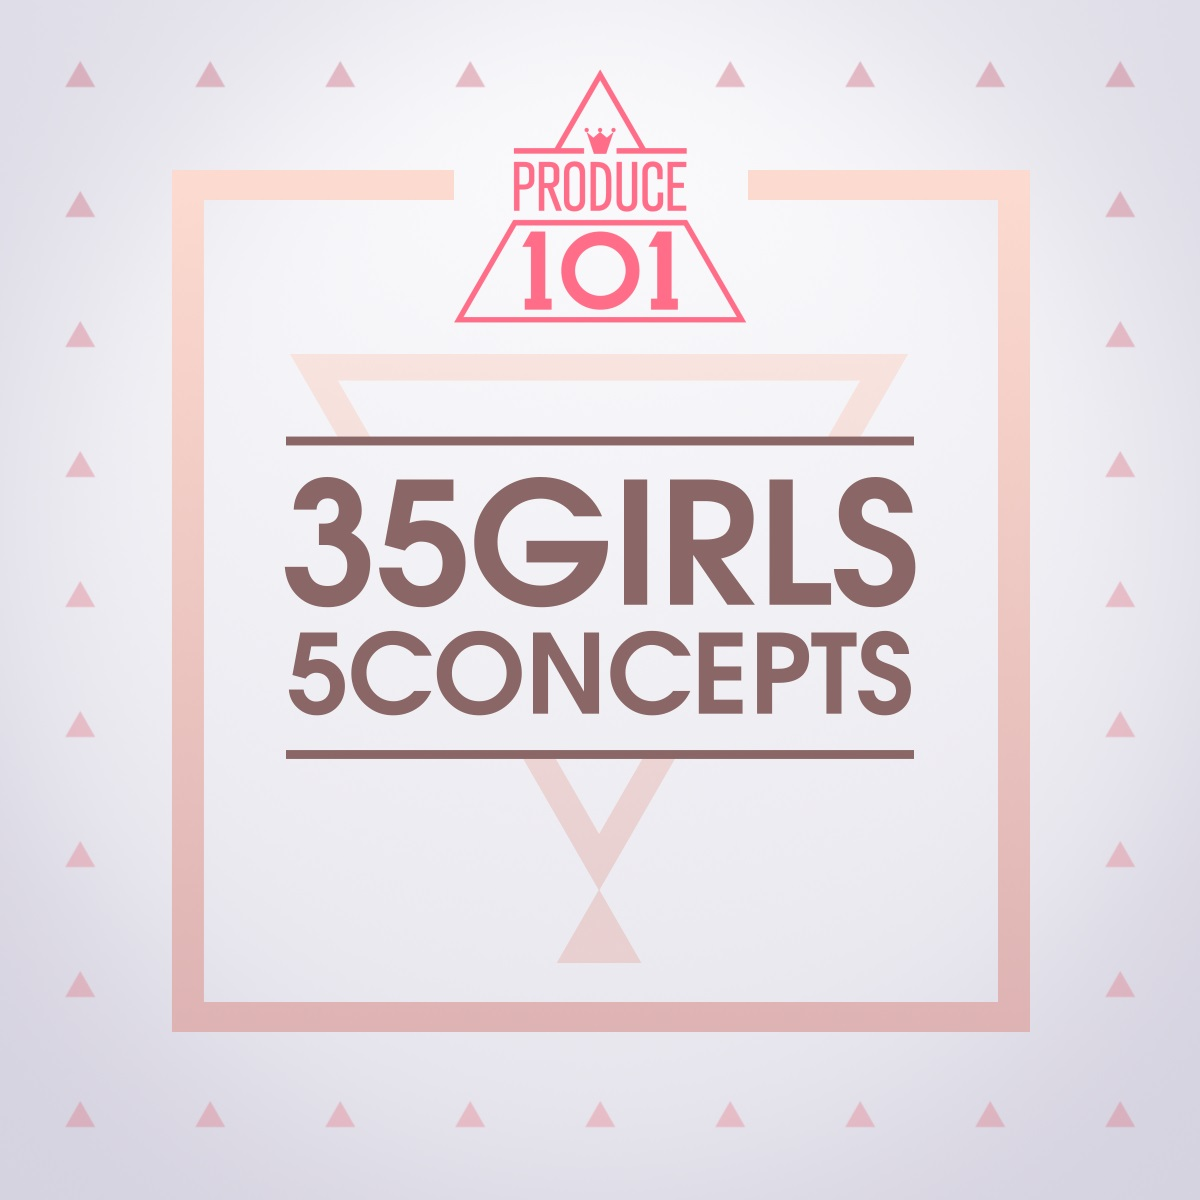 Produce 101 - 35 Girls 5 Concepts - Various Artists K2Ost free mp3 download korean song kpop kdrama ost lyric 320 kbps